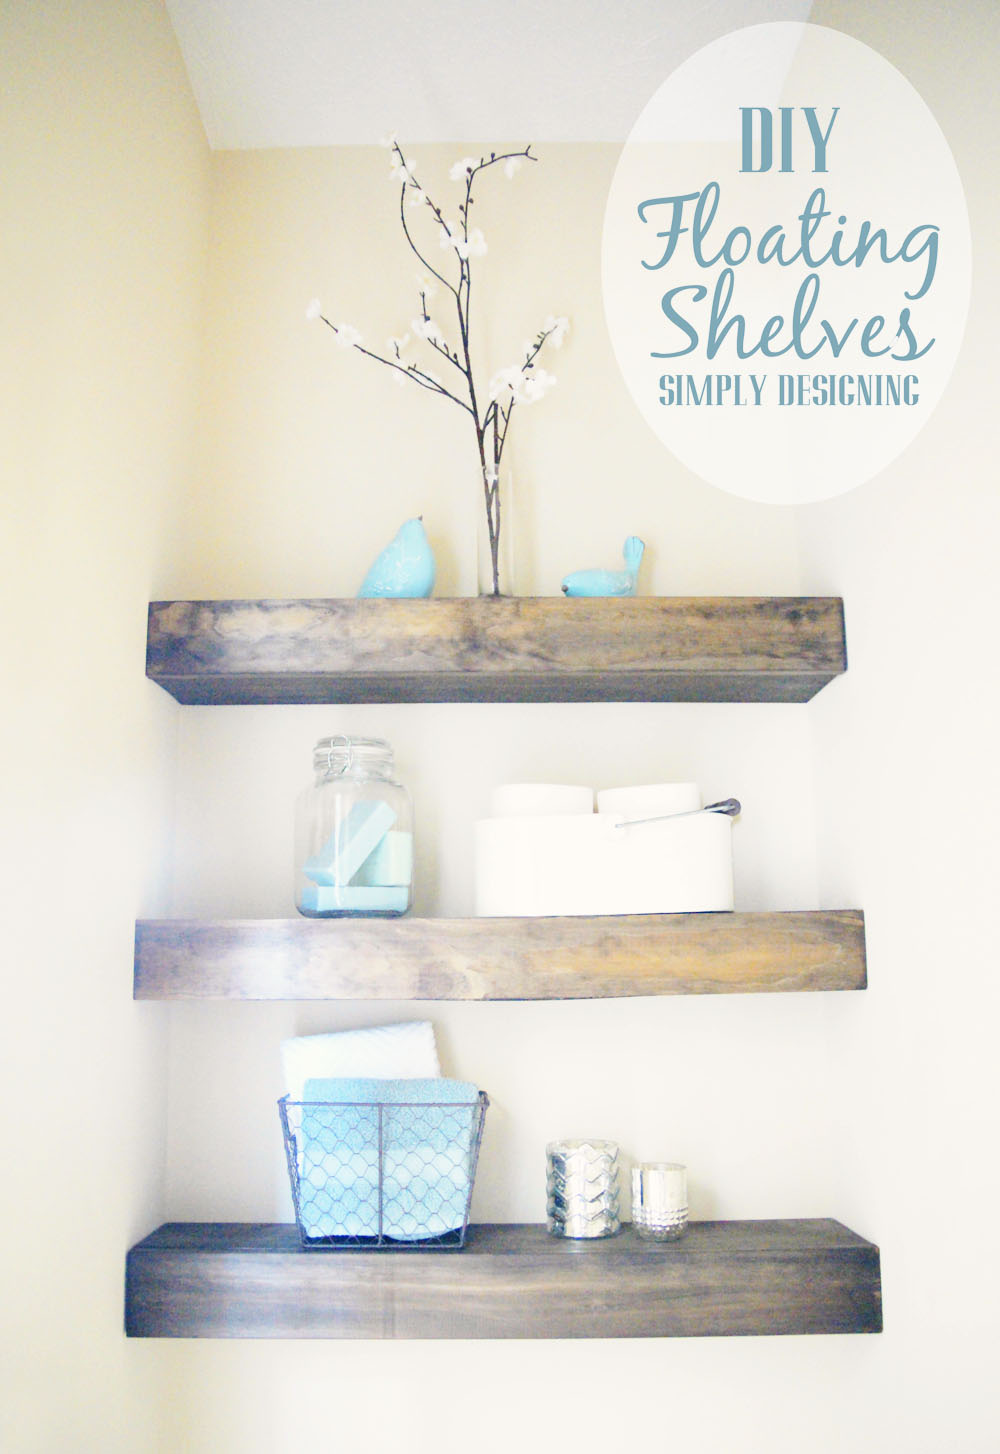 diy floating shelves how measure cut and install shelf mitre are really easy make they the perfect single wooden corner degree mega hours wall hung unit low wide shelving stand